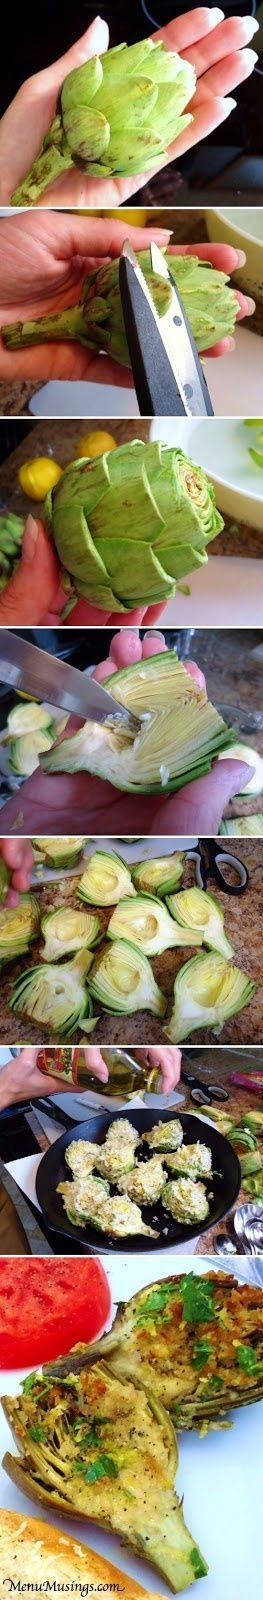 Stuffed Baby Artichokes | Recipe Sharing Community